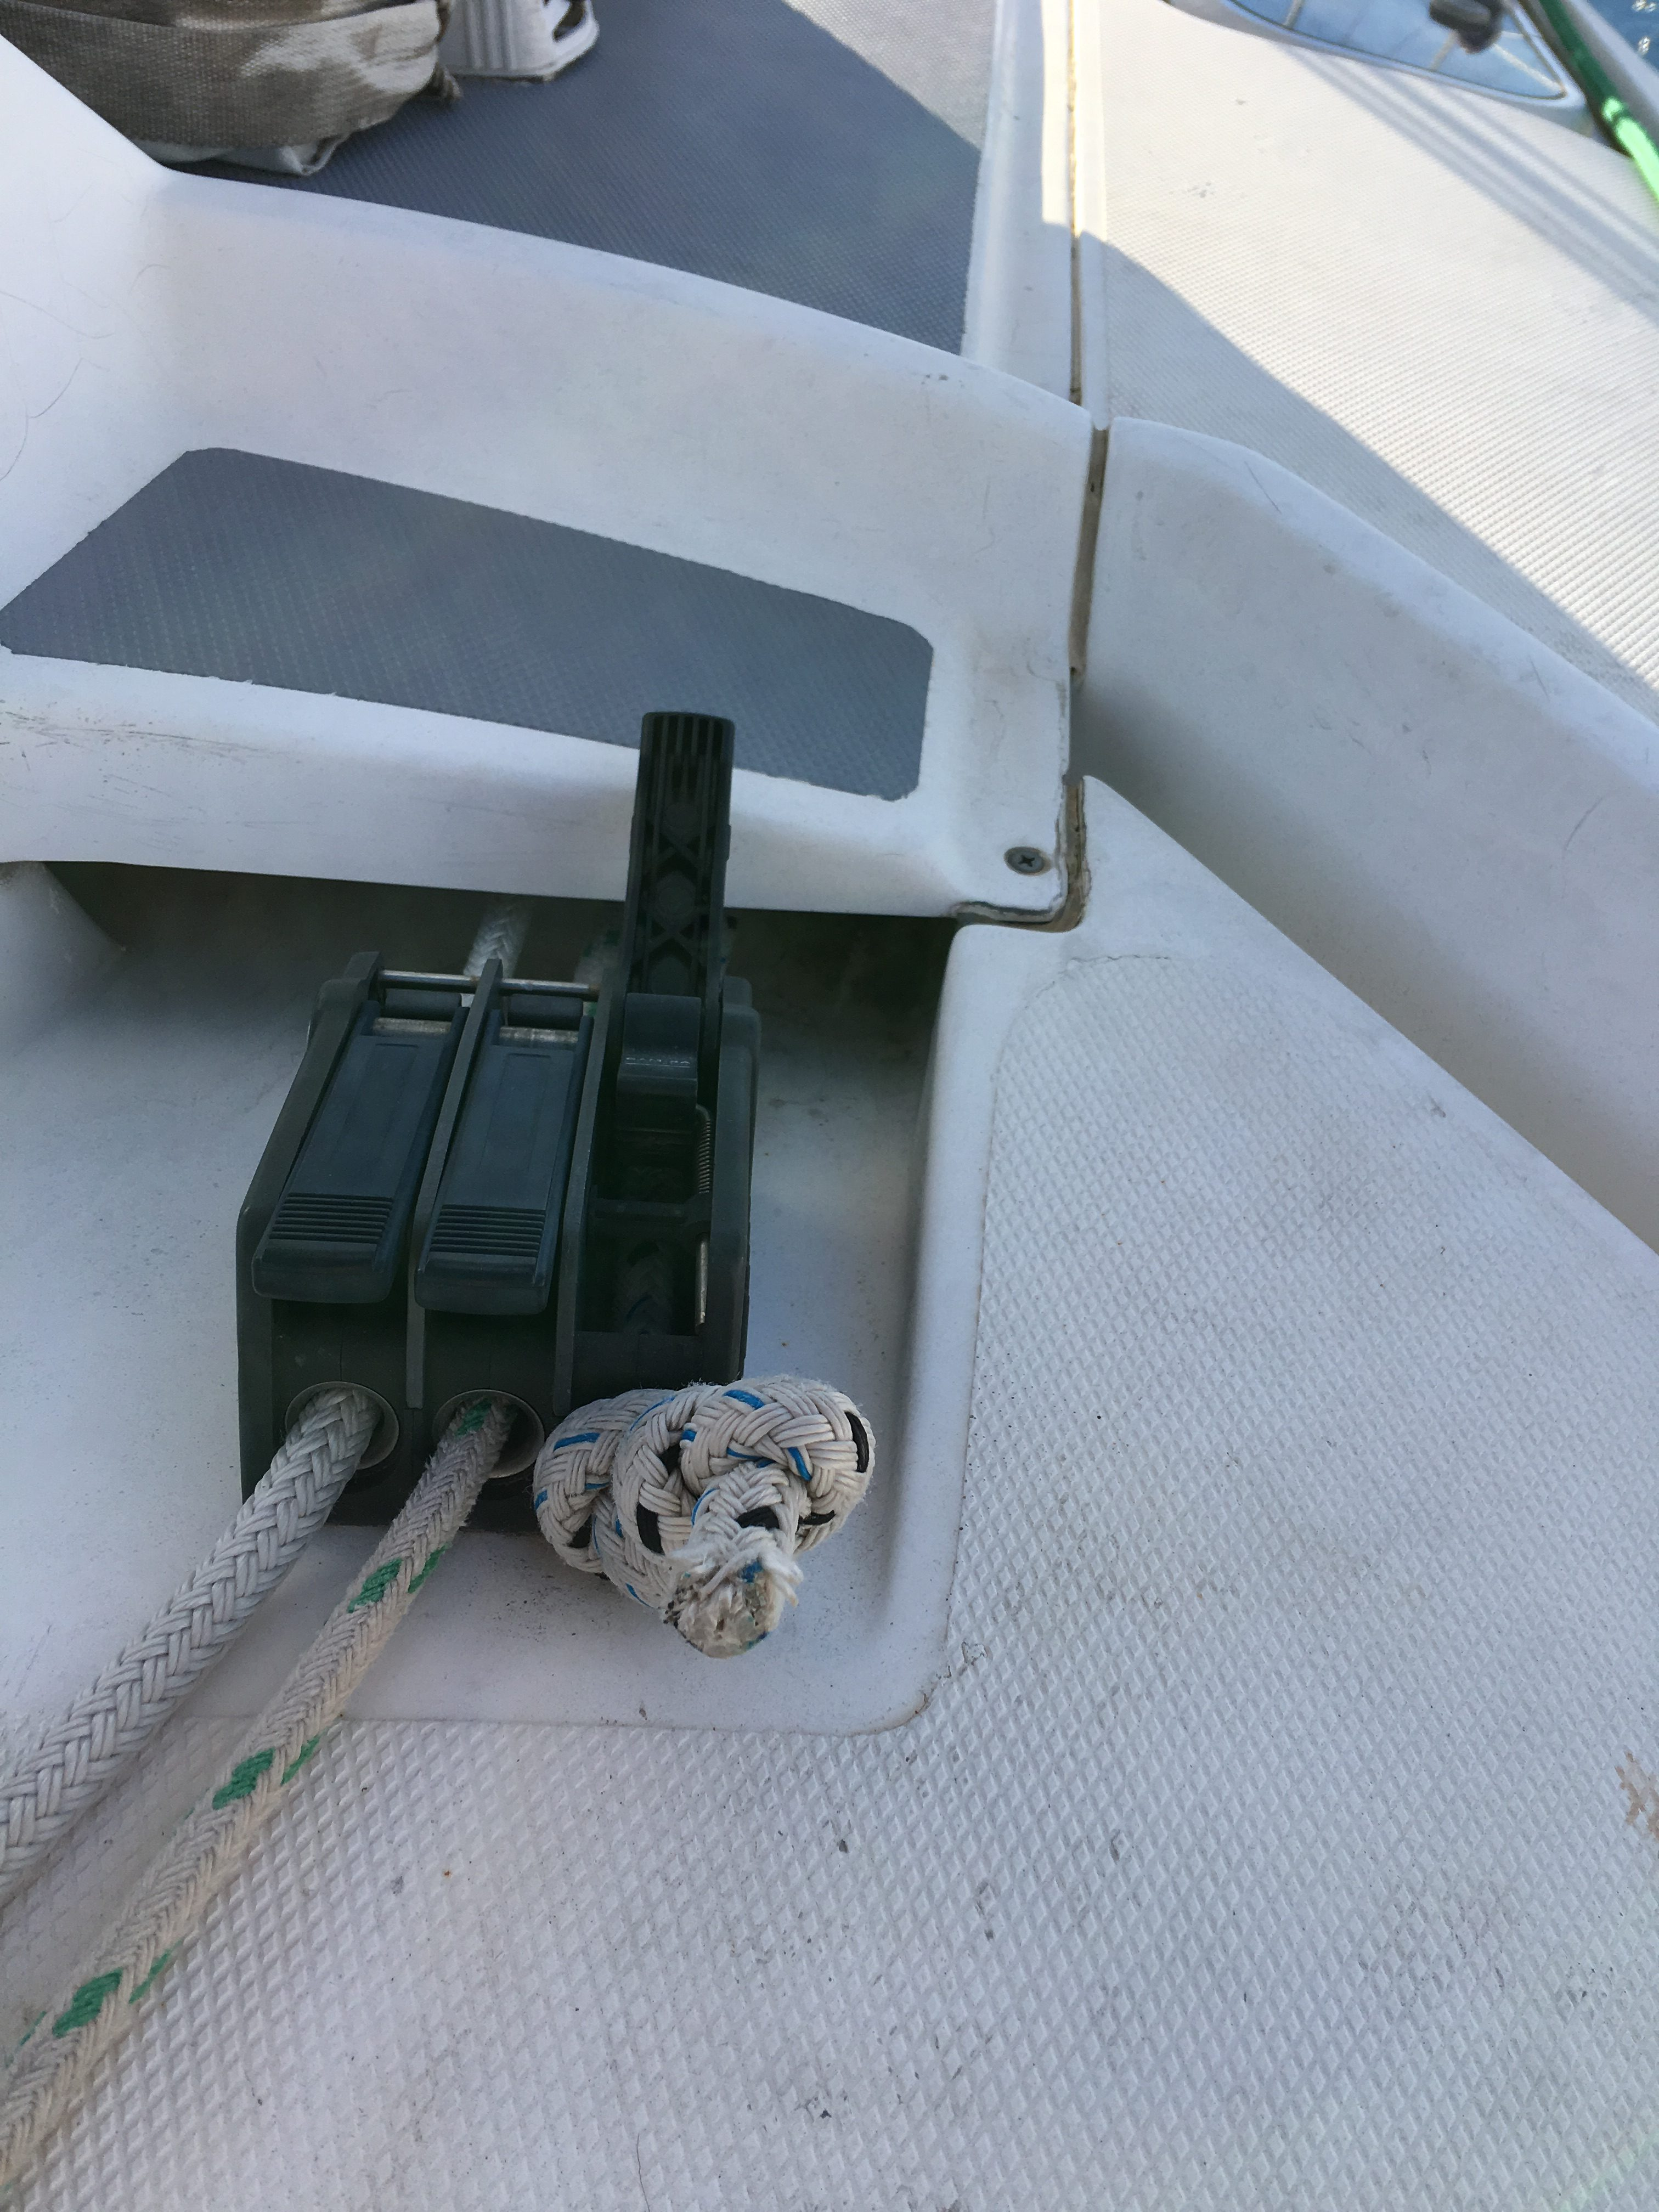 Rope tight up against a clutch on a sailing yacht.